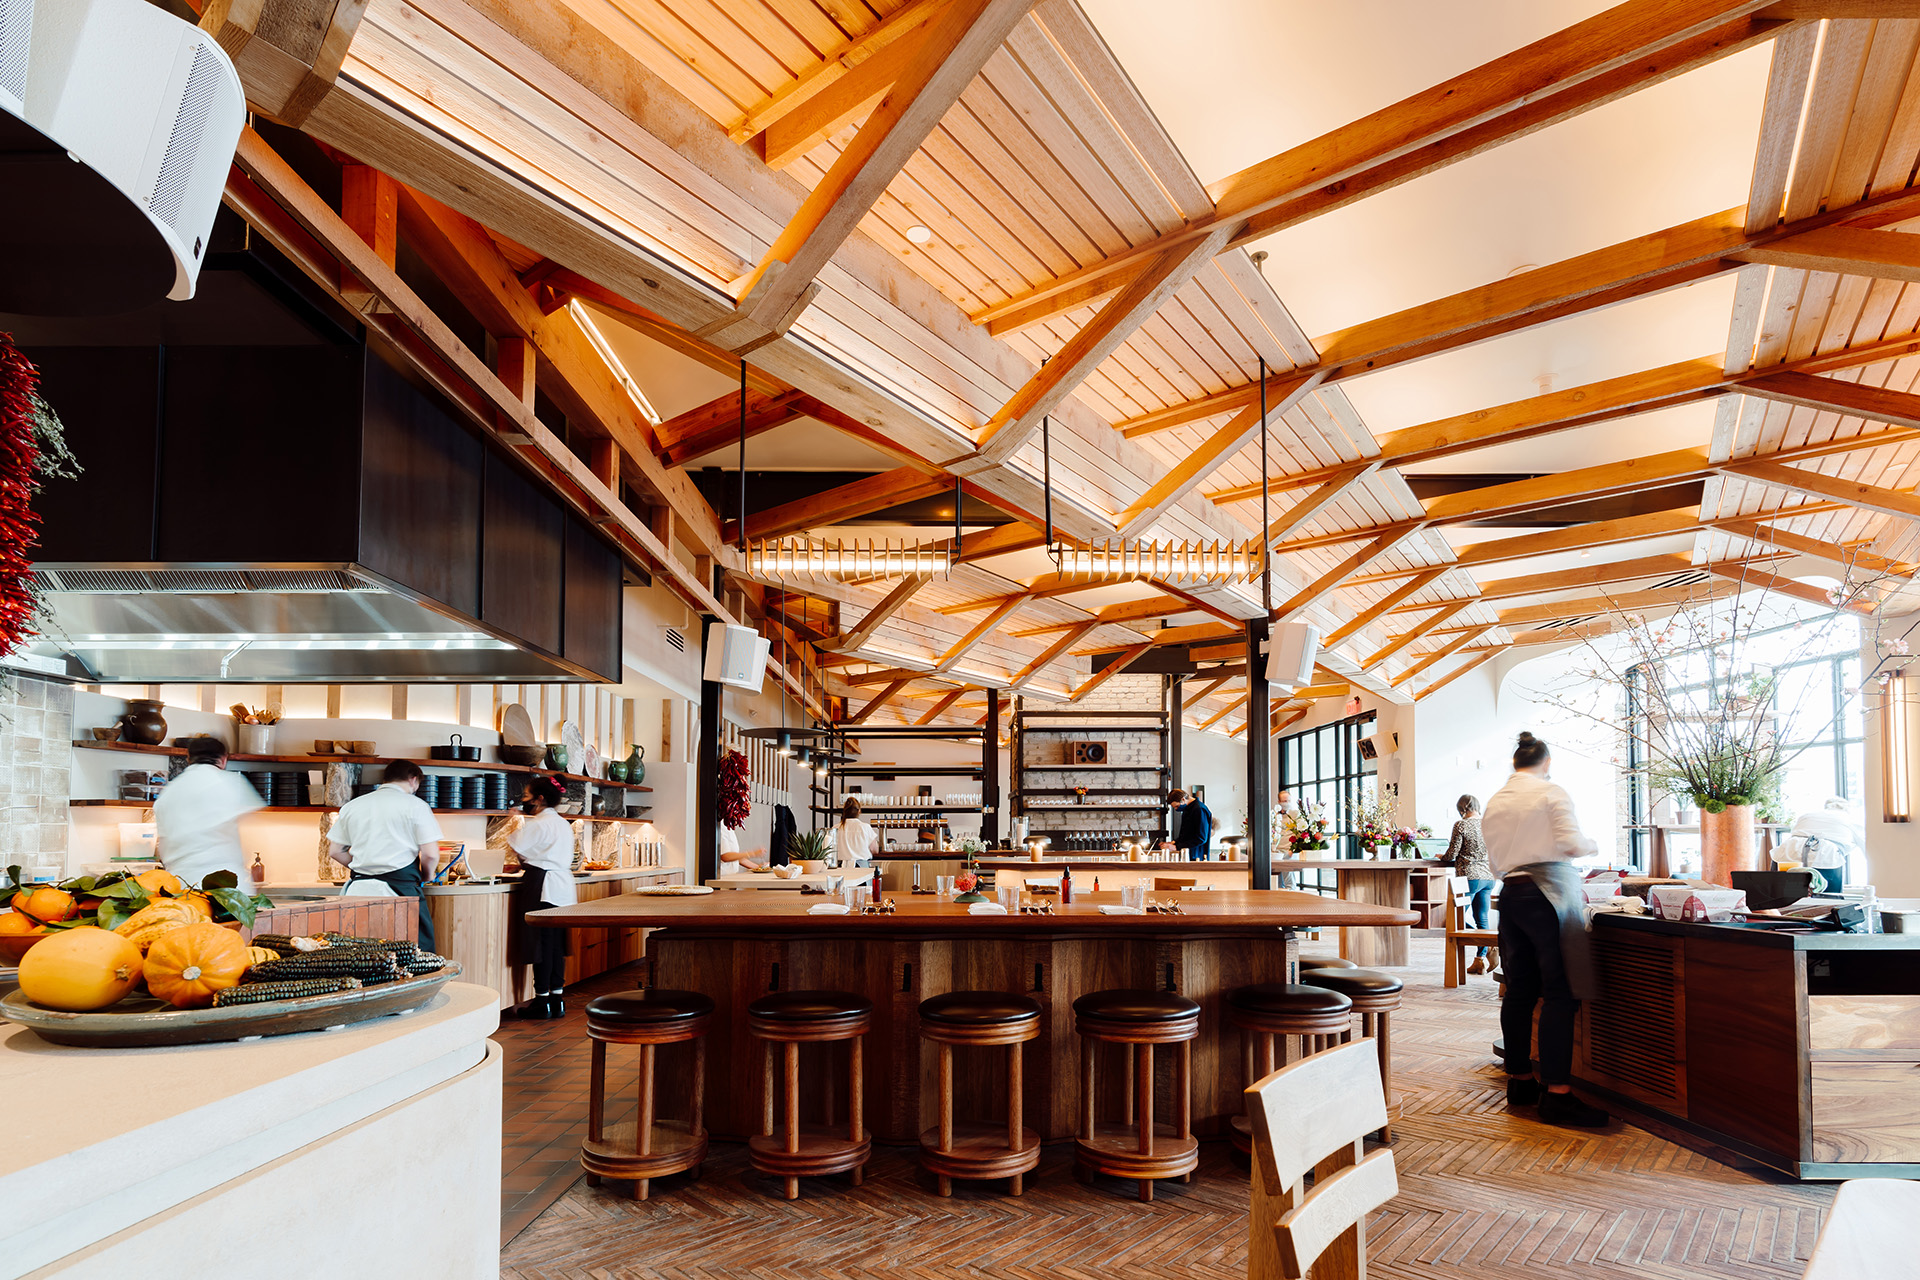 The view of the sun-filled dining room and bar. Lots of blonde wood, vaulted ceilings with soaring beams. A small bar is at the center of the room with a few stools and in the background are several, soft focused staff members in white shirts and black pants.